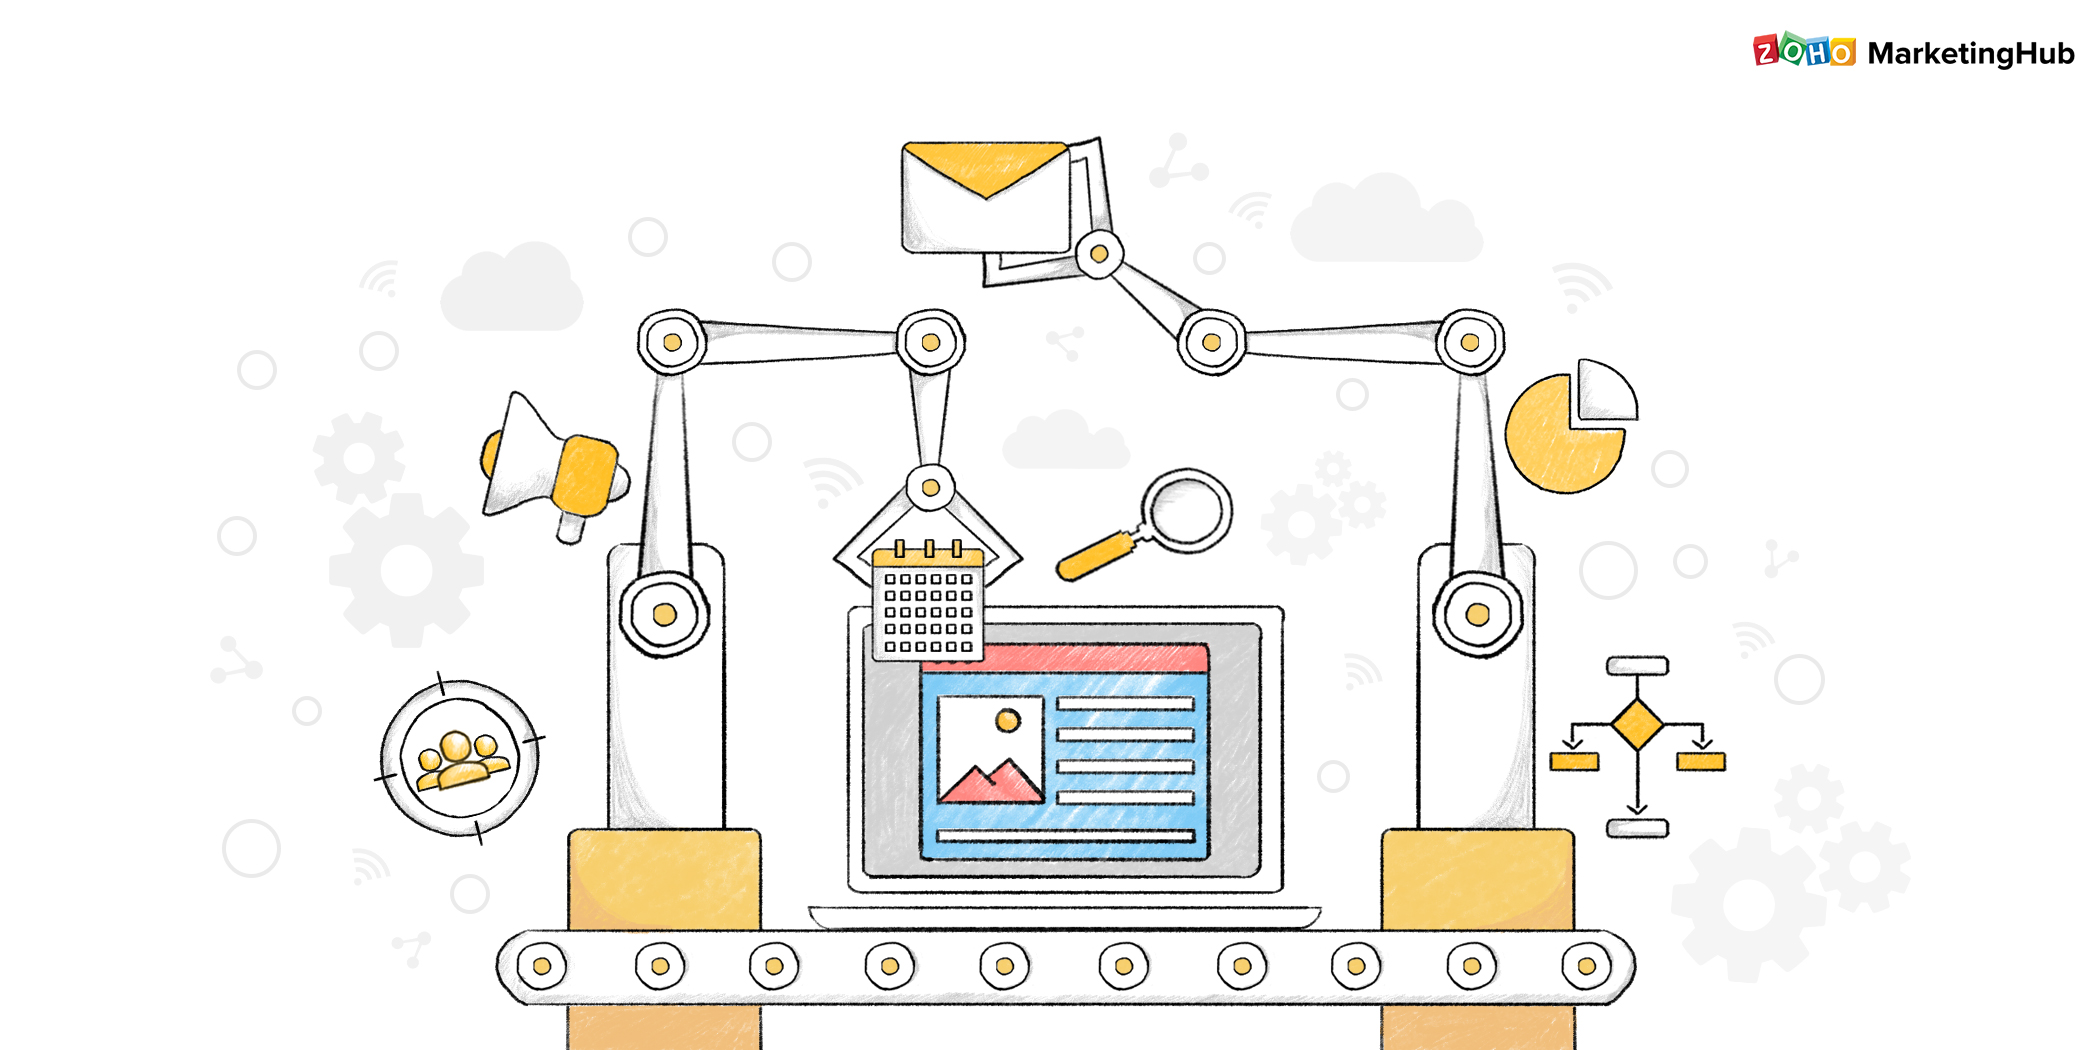 When should you use marketing automation?